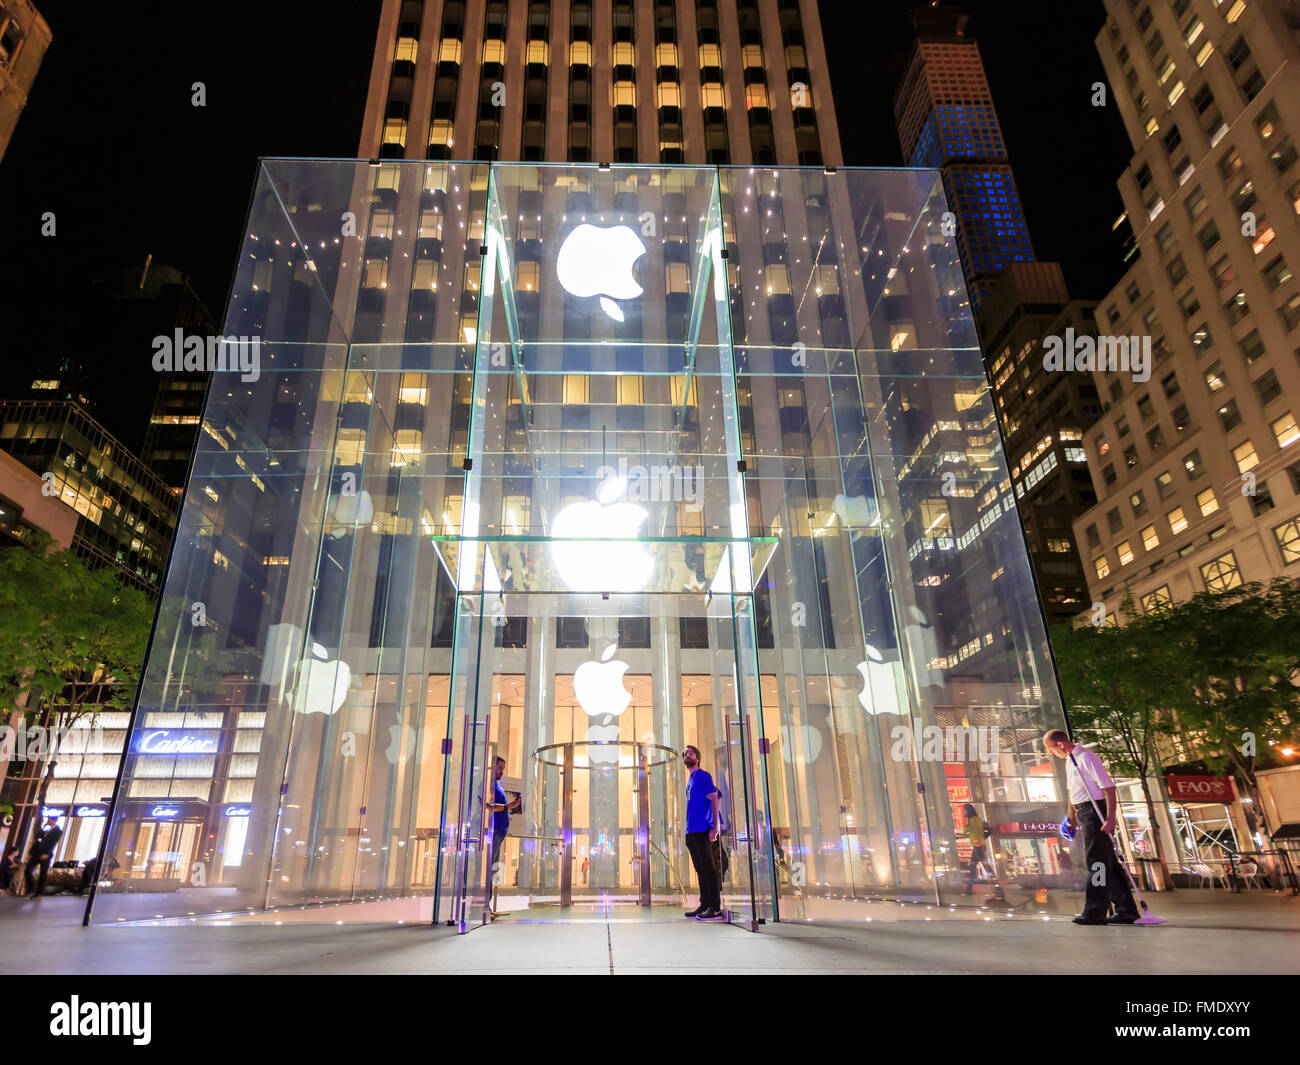 NEW YORK CITY, SEP 16: The famous Apply Store around night on SEP 16, 2014 at New York City. Stock Photo